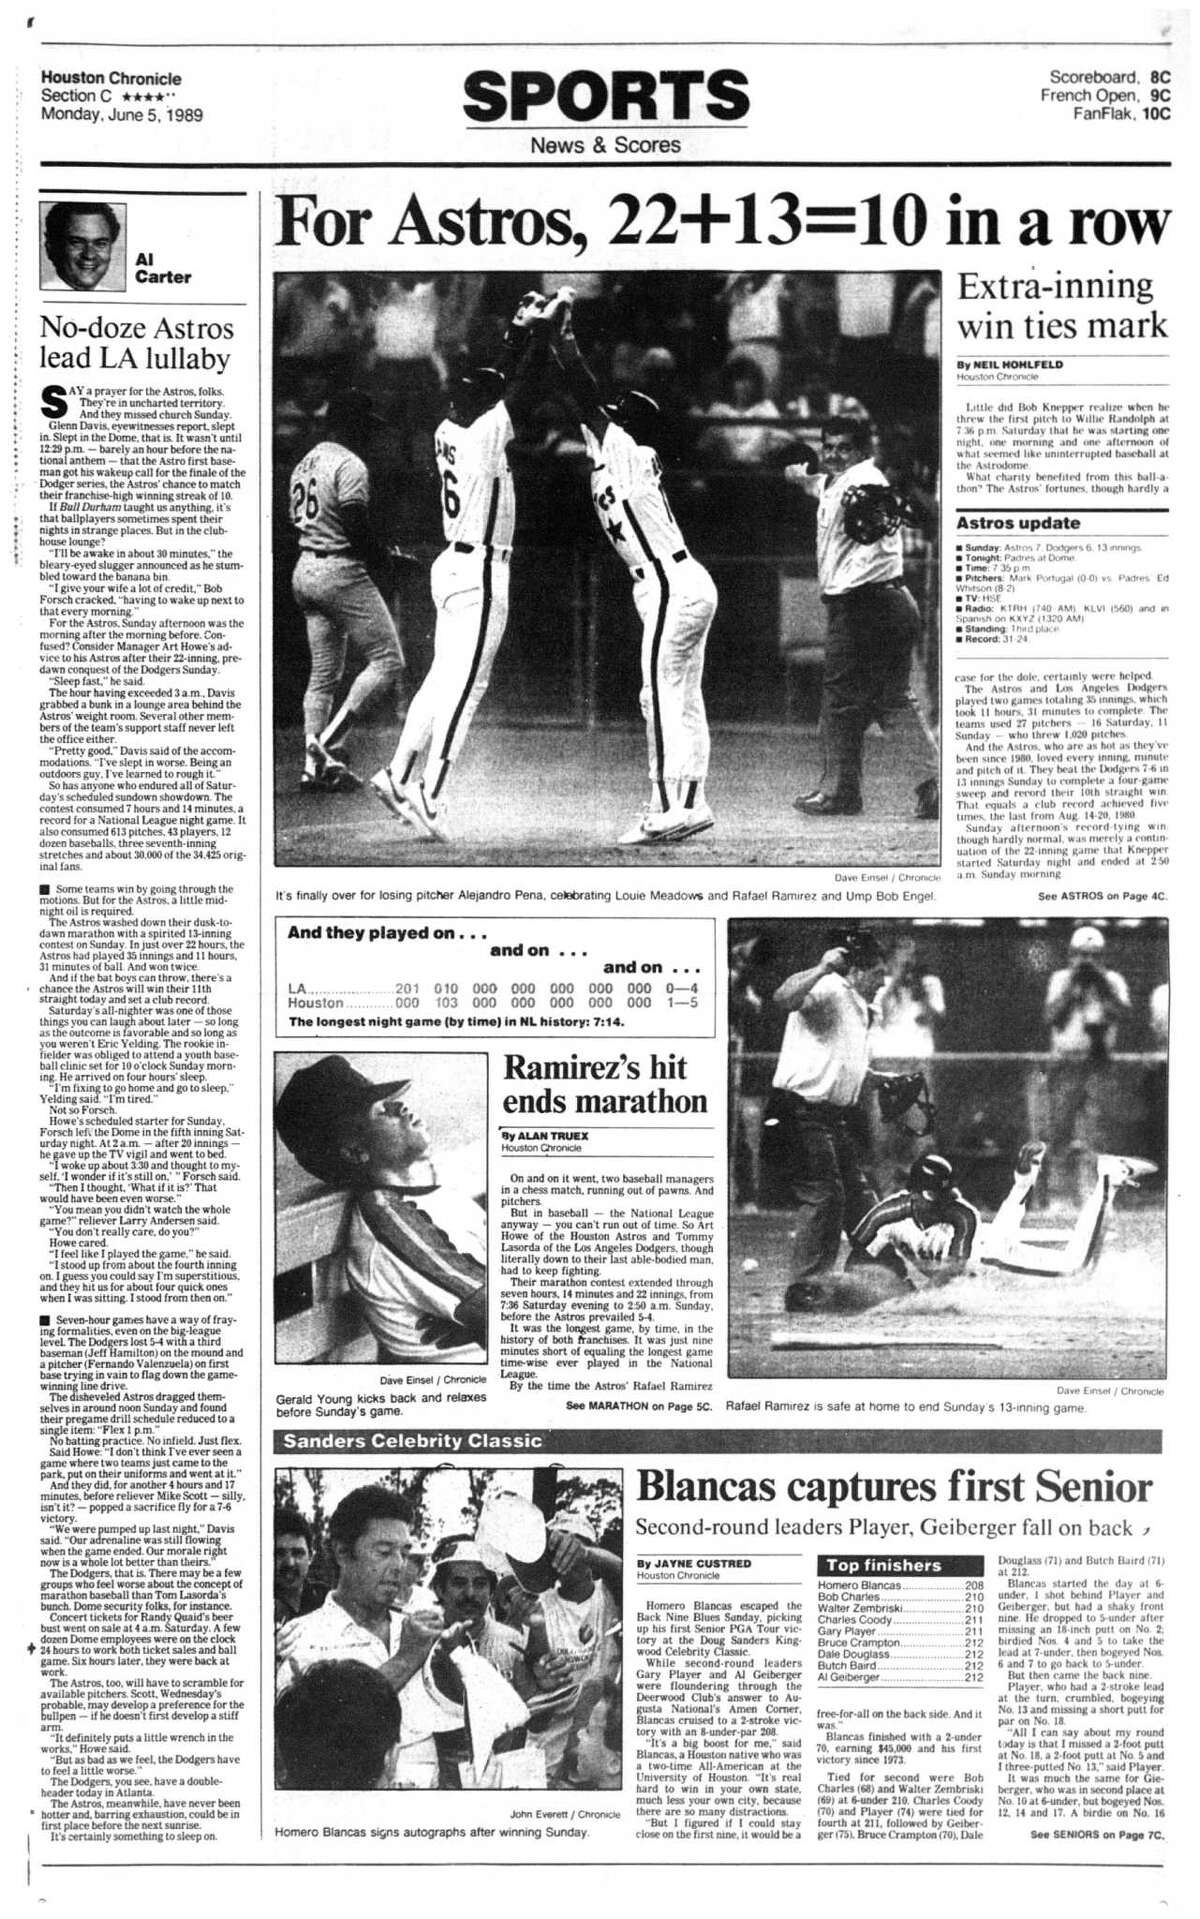 Houston Chronicle inside page (HISTORIC) Â?- June 5, 1989 - section C, page 1. For Astros, 22&13=10 in a row. Extra-inning win ties mark. Ramirez's hit ends marathon. (Astros Dodgers)